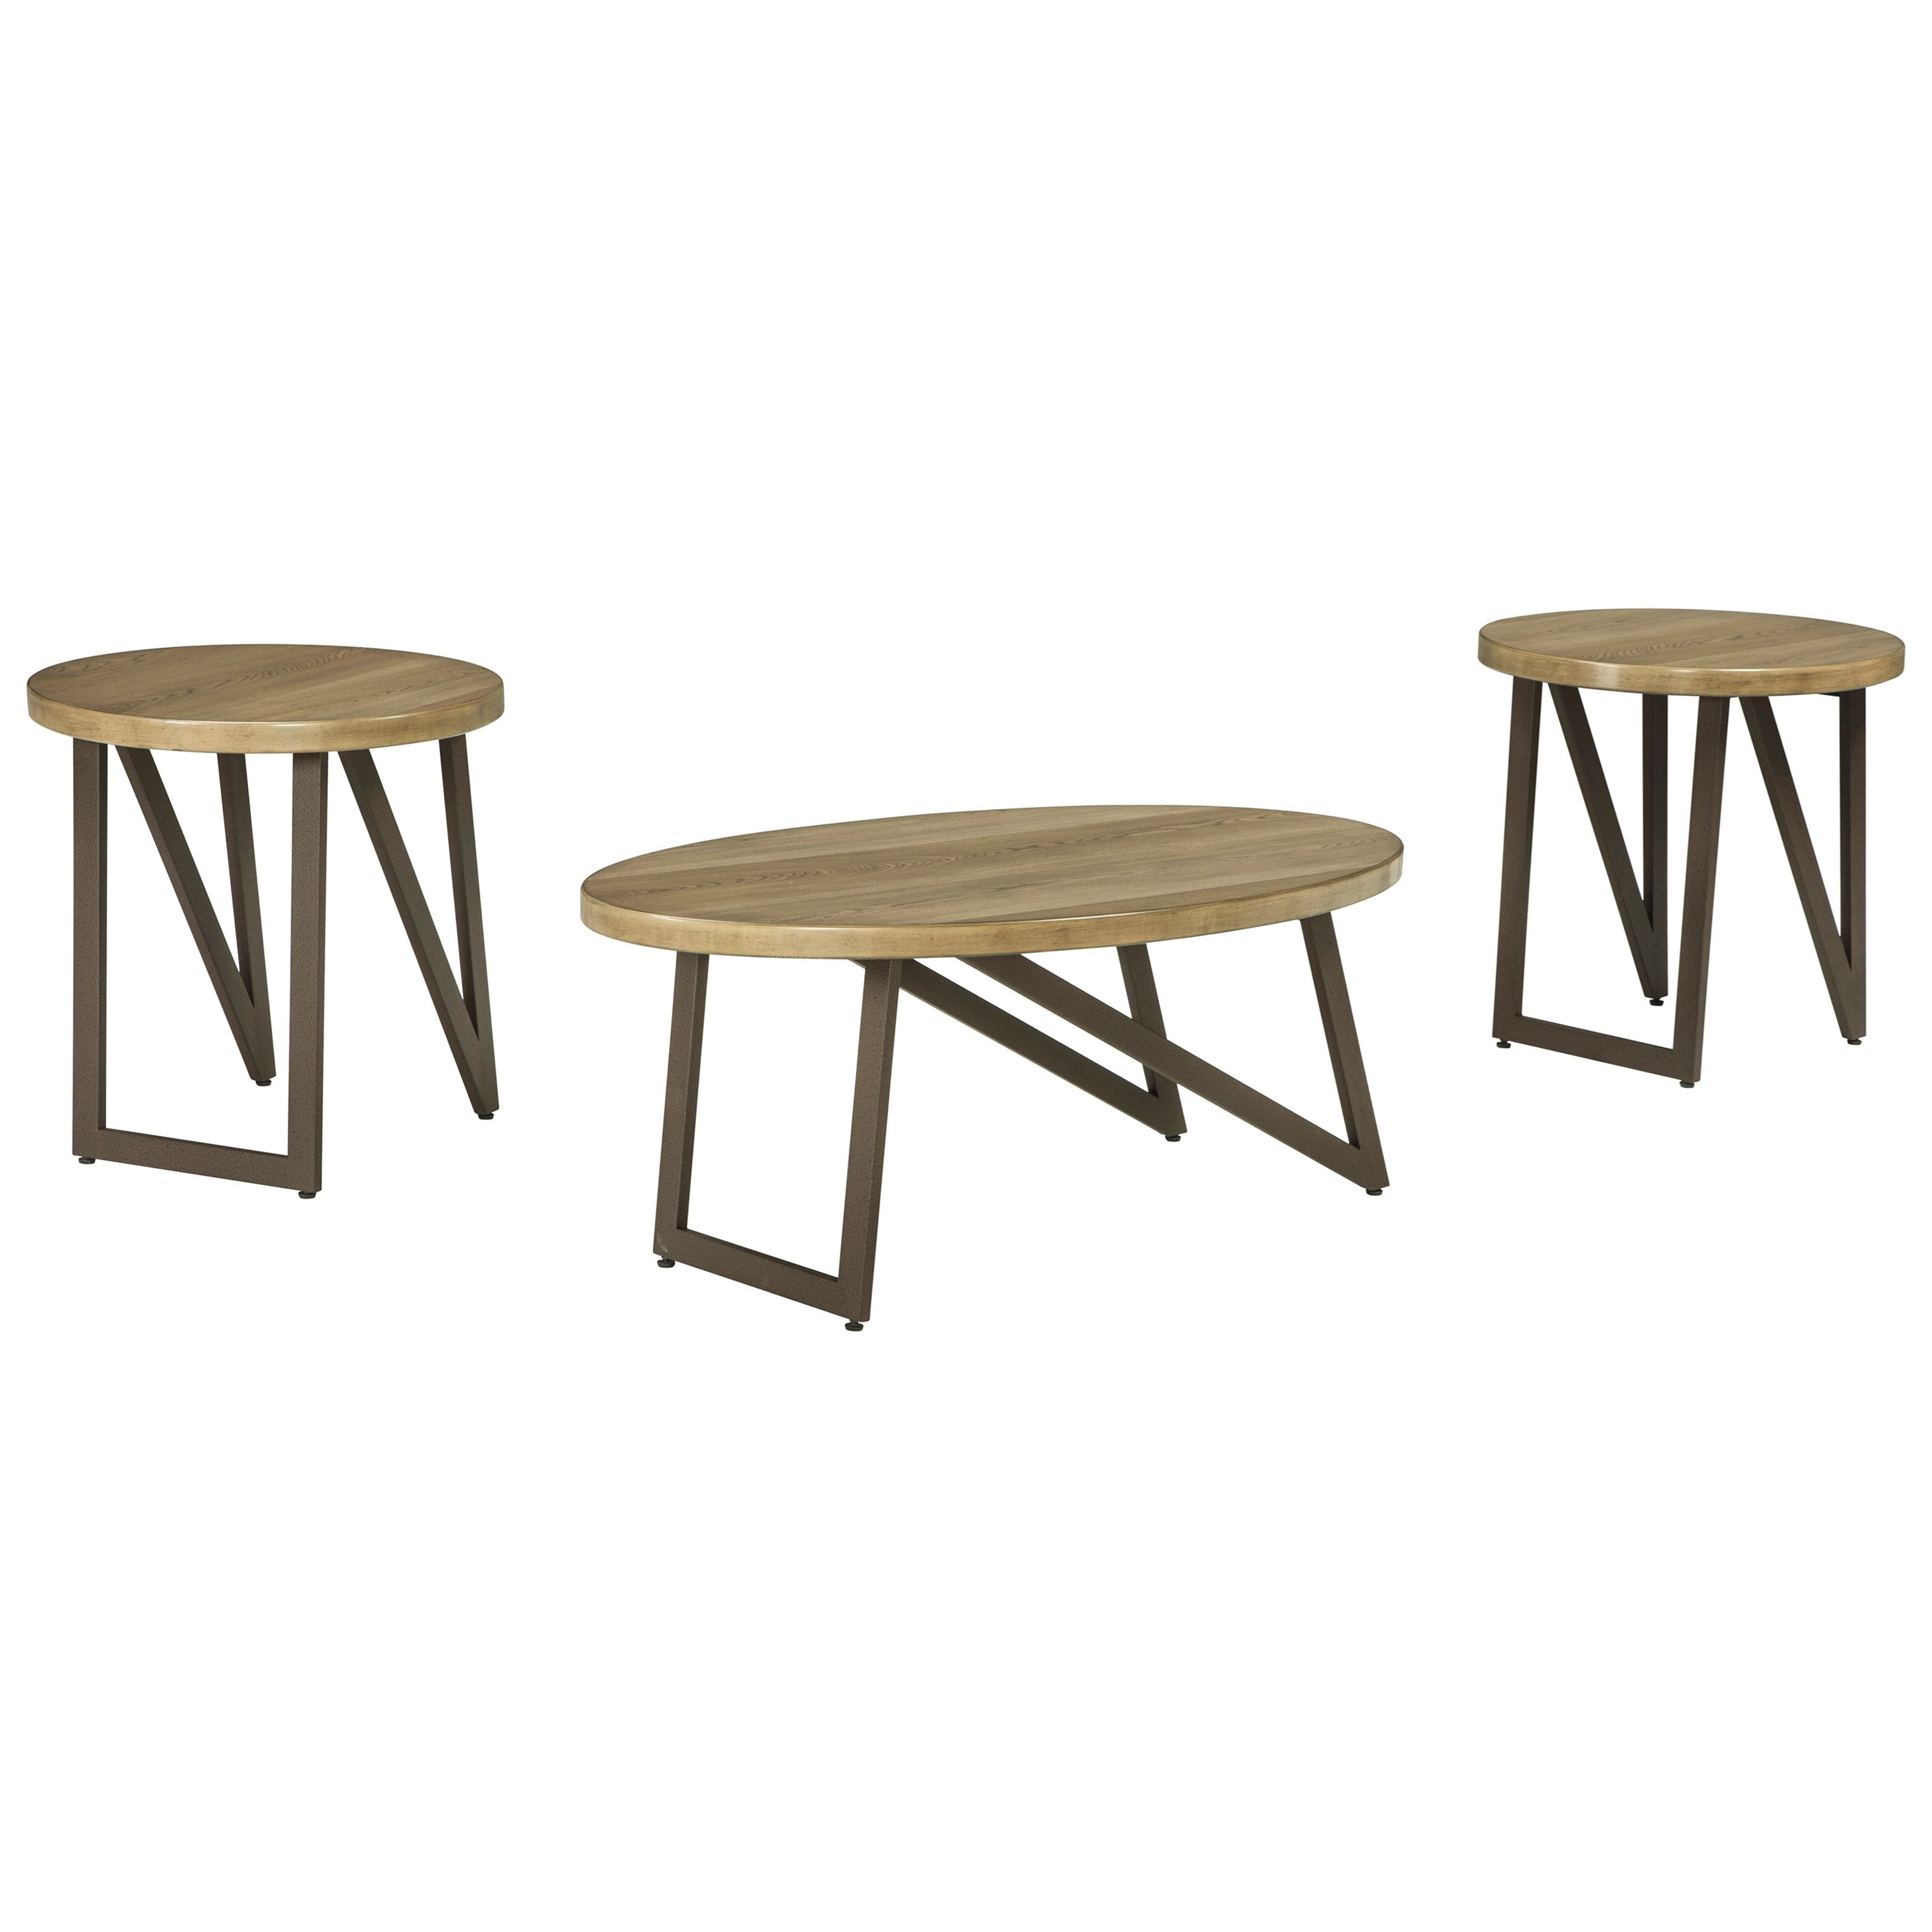 Signature Design by Ashley Dougetti Occasional Table Set - Item Number: T298-13